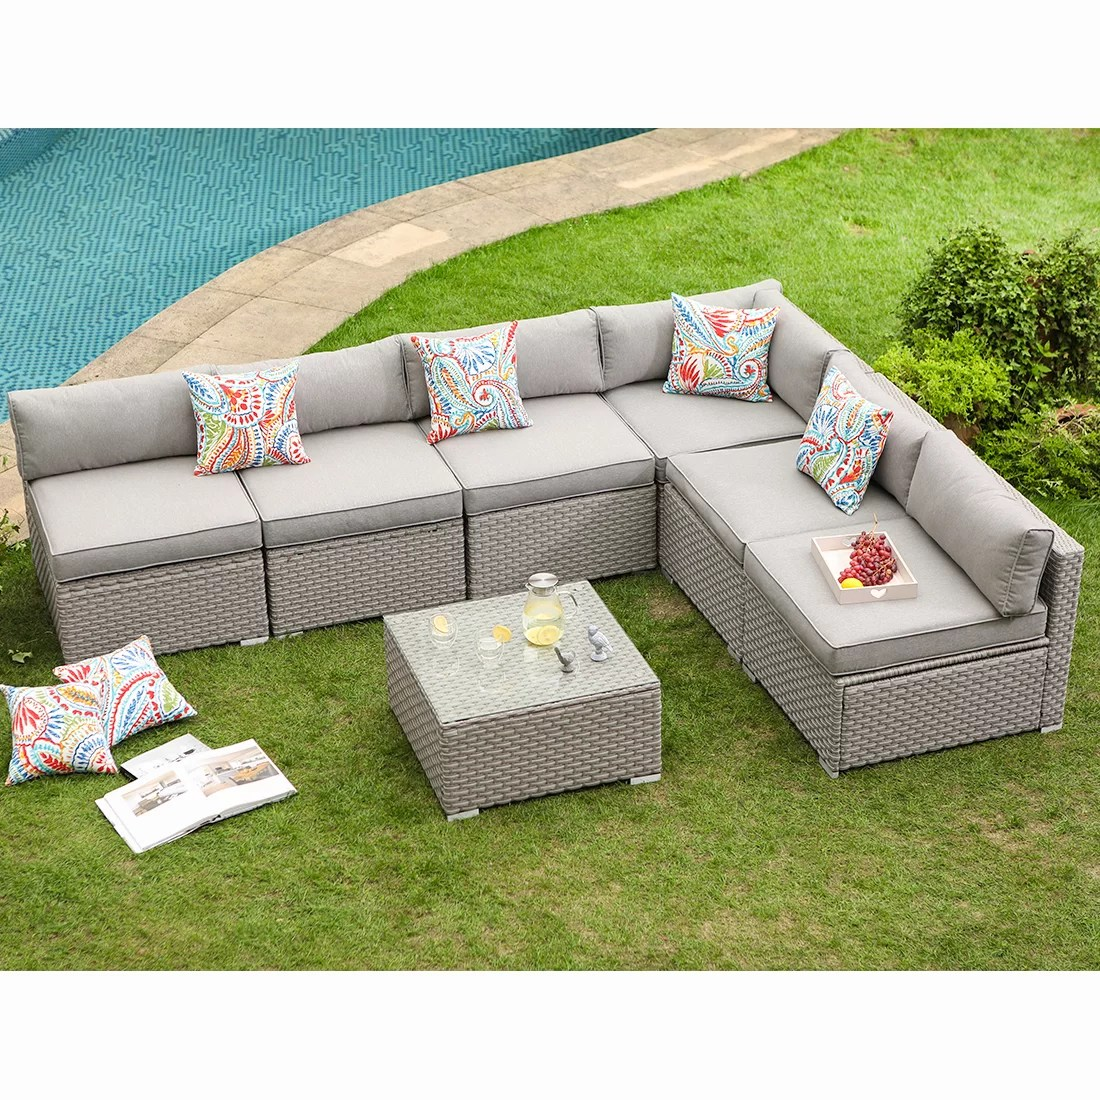 kemar 7 piece outdoor furniture set warm gray wicker sectional sofa w thick cushions glass coffee table 6 floral fantasy pillows